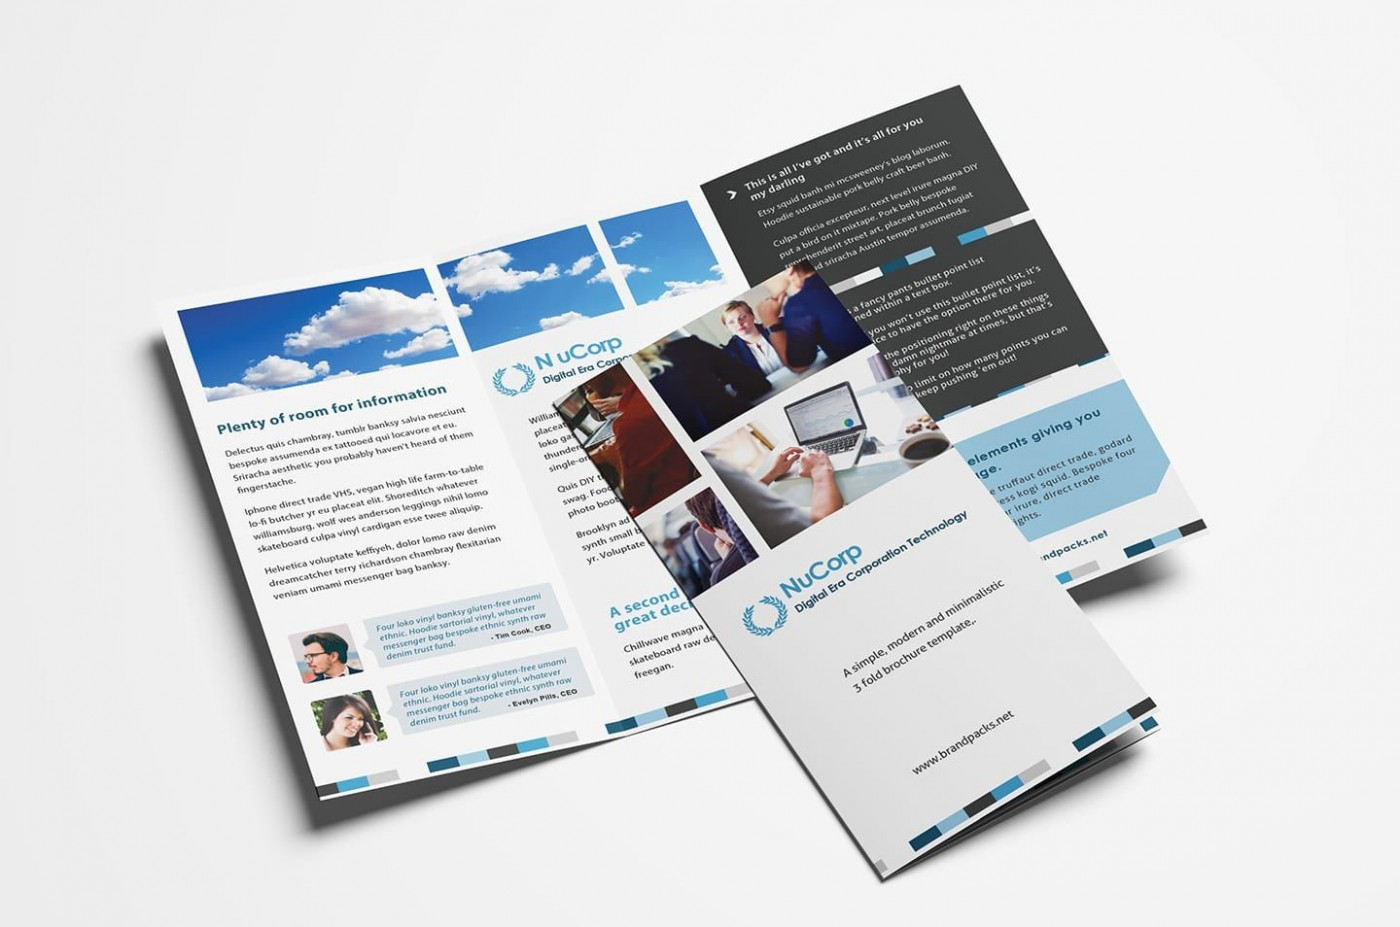 005 Unbelievable Tri Fold Brochure Template Free Picture  Download Photoshop M Word Tri-fold Indesign Mac1400